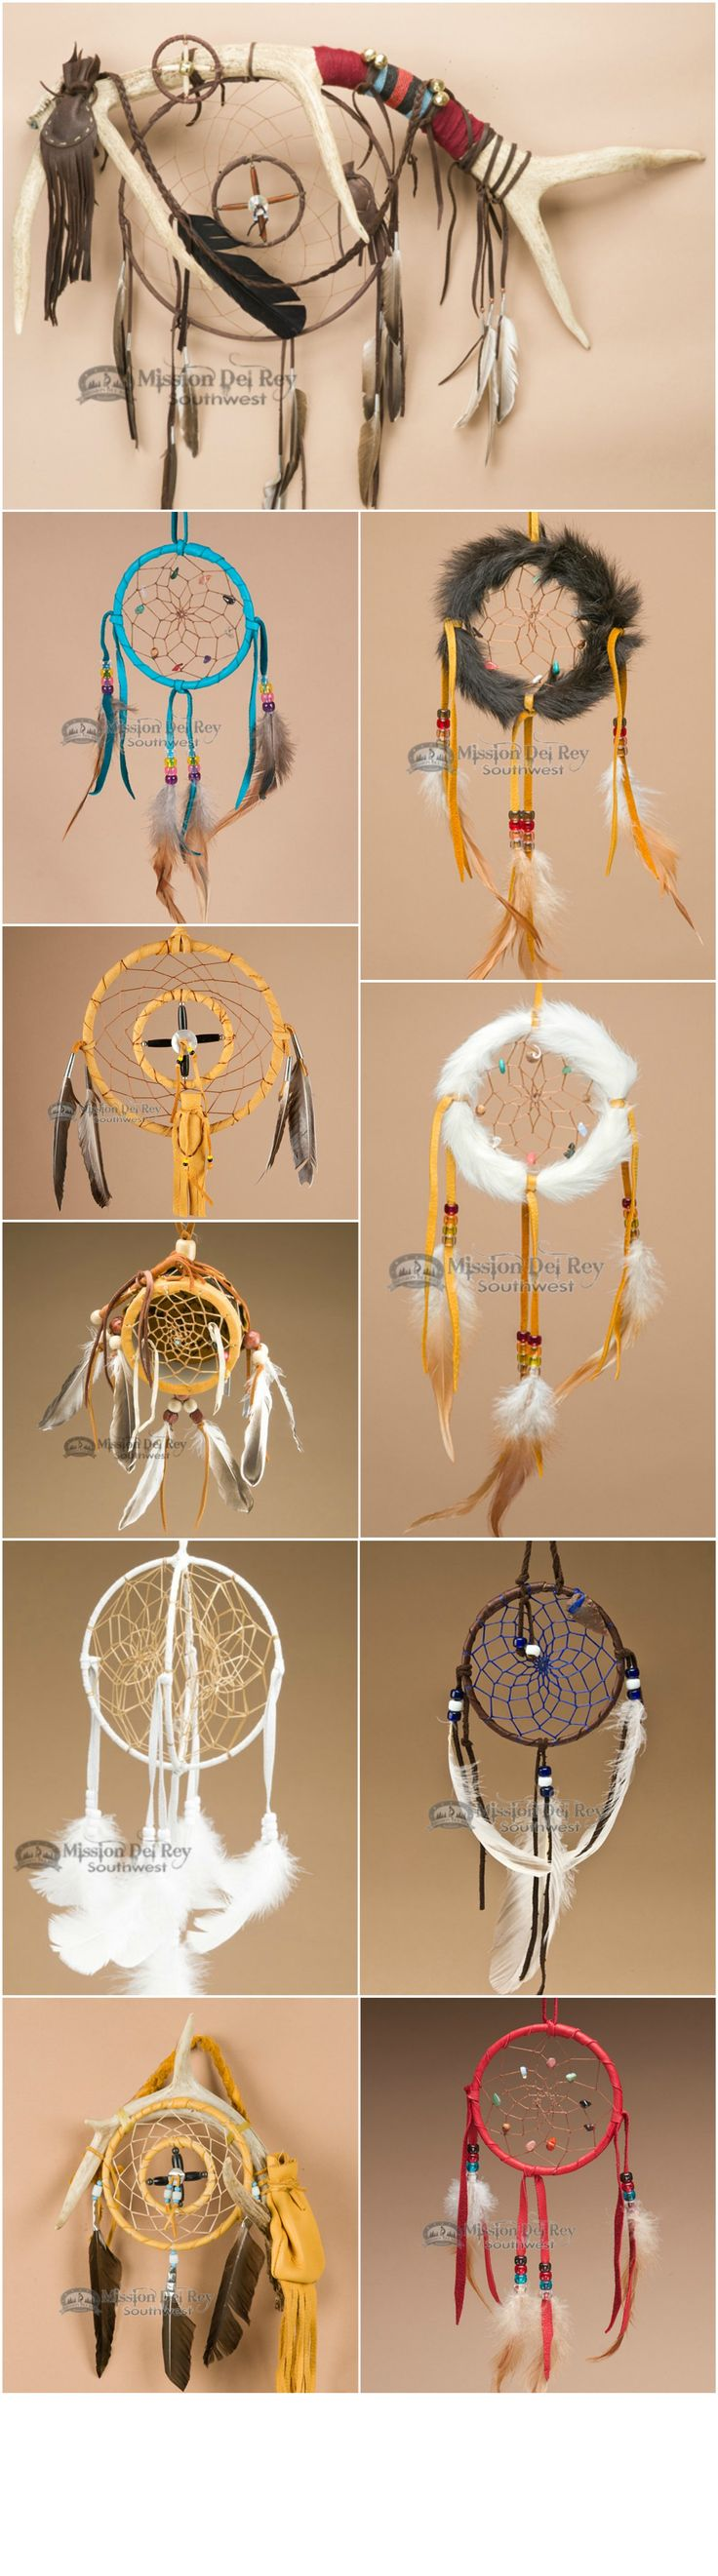 Native American dream catchers and medicine wheels  http://www.missiondelrey.com/native-american-dream-catchers/